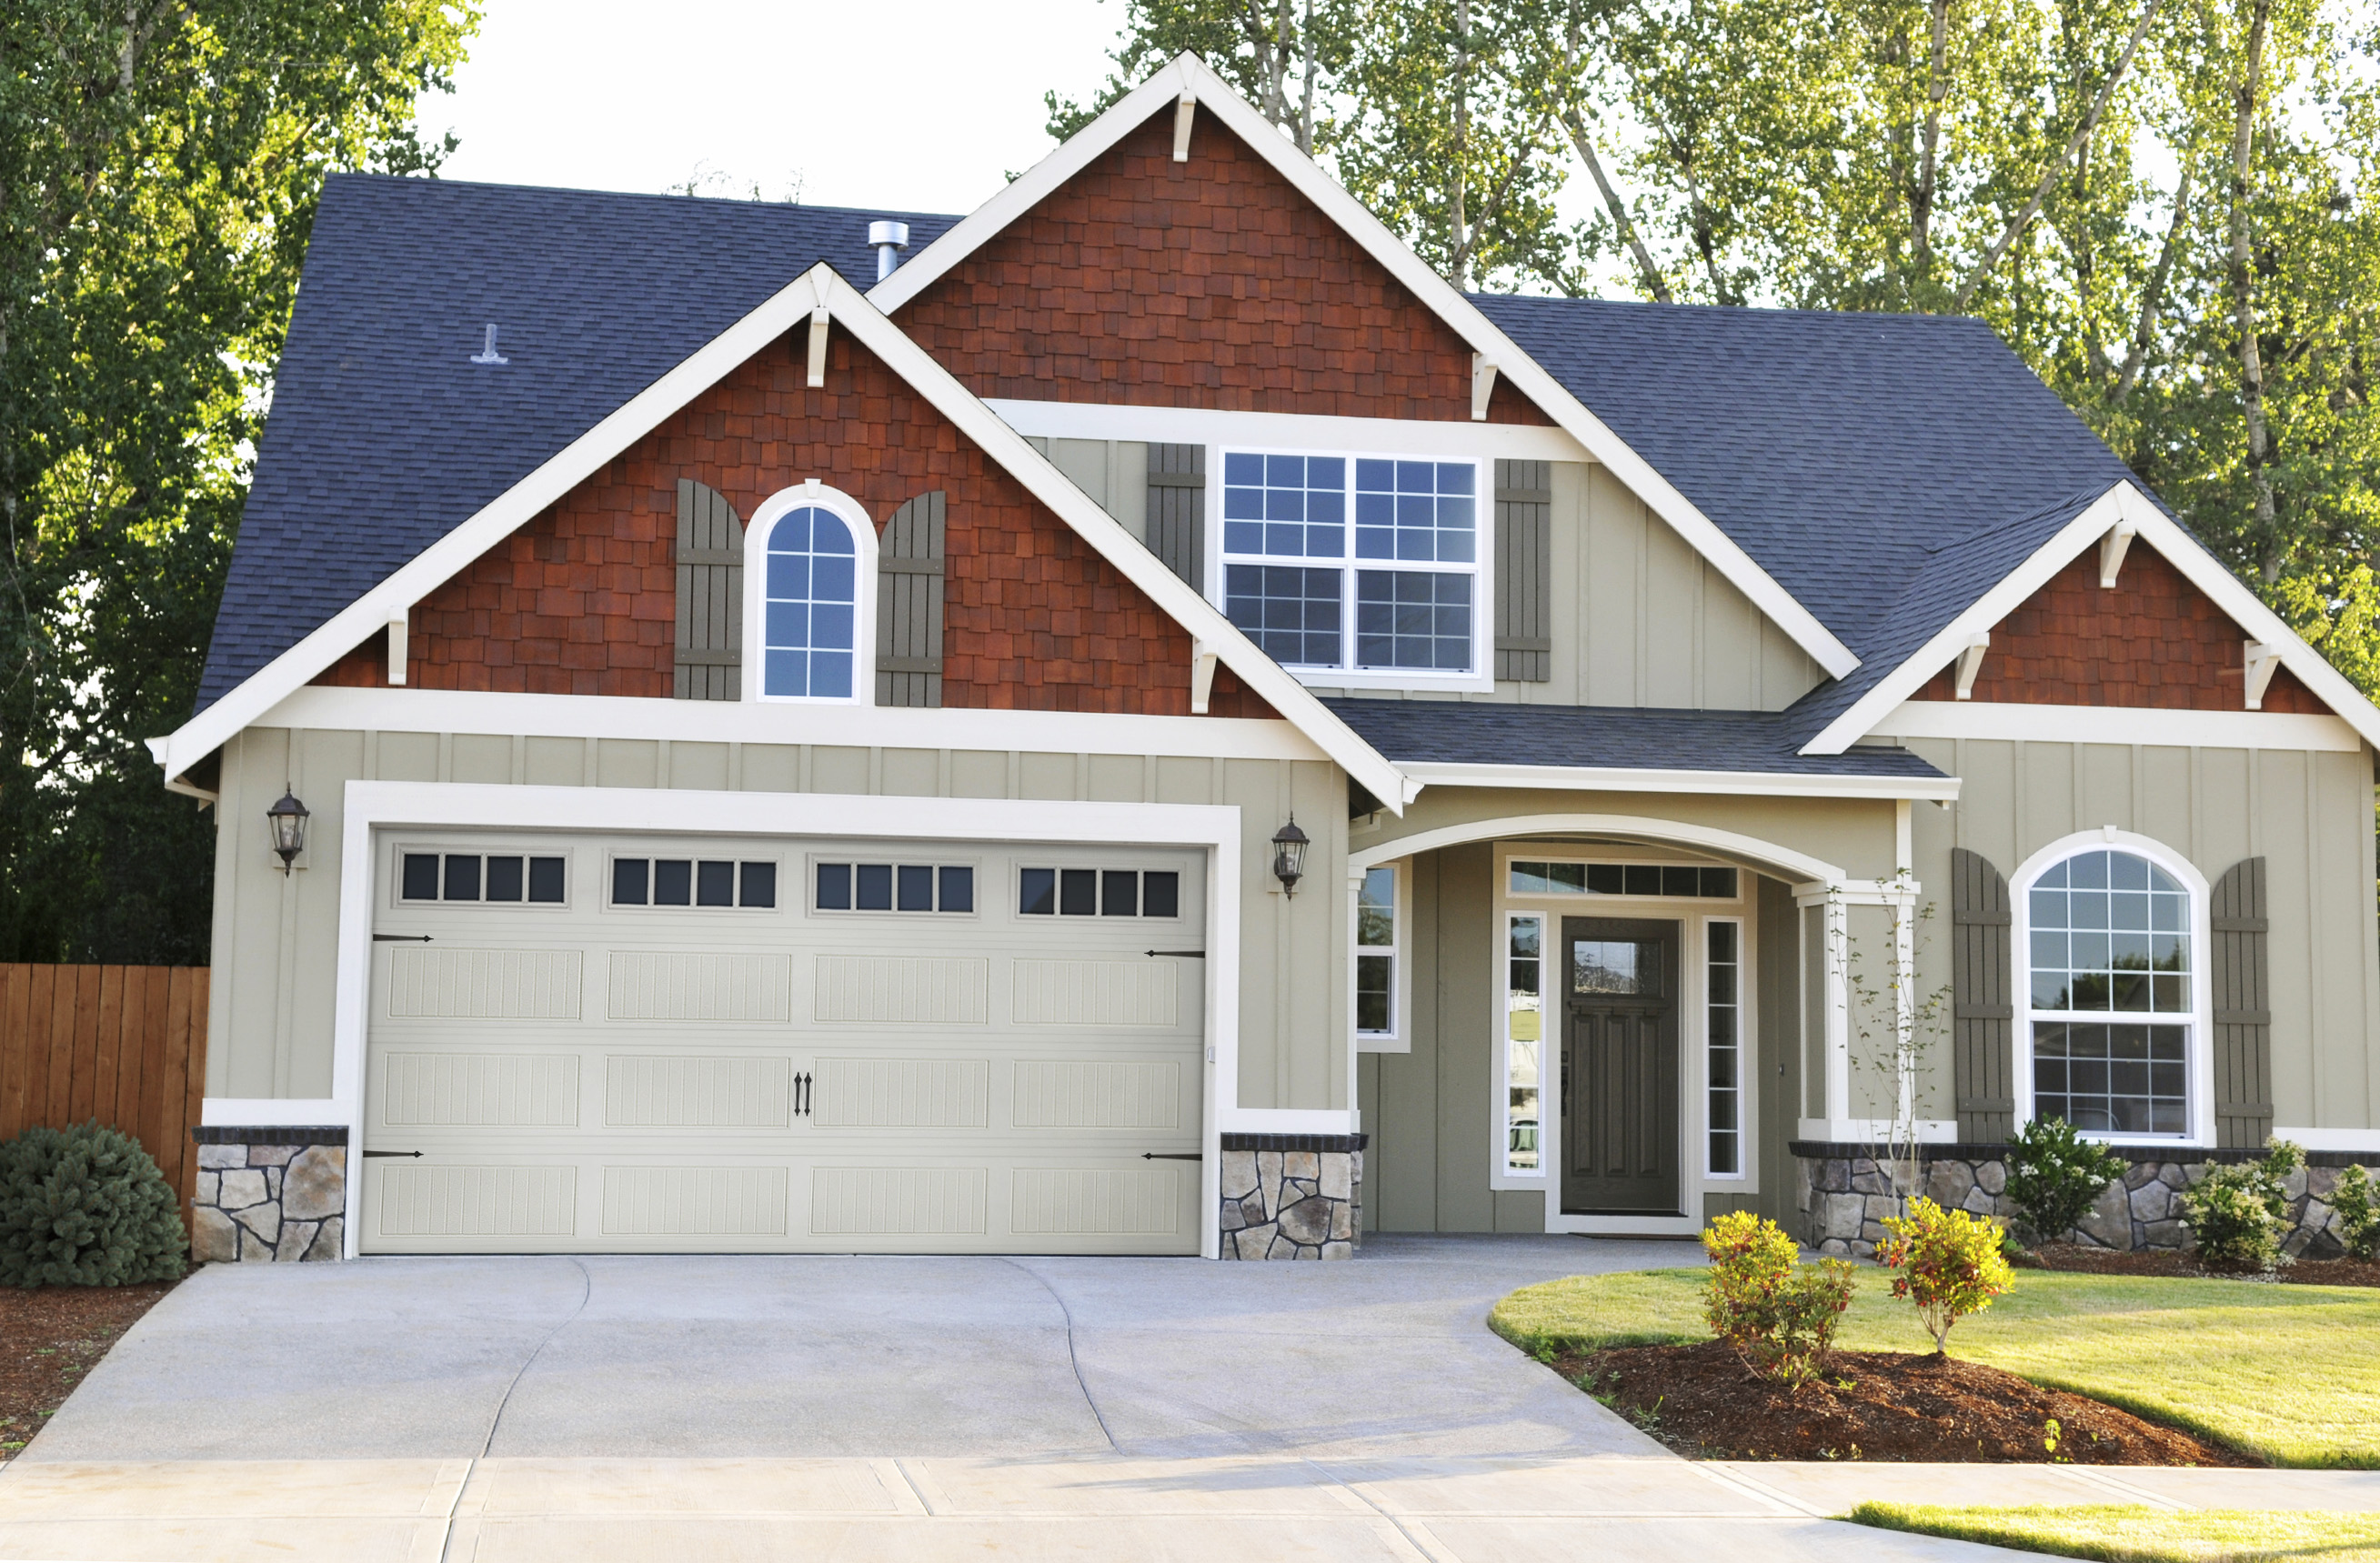 Garage Door Repair Rancho Cucamonga